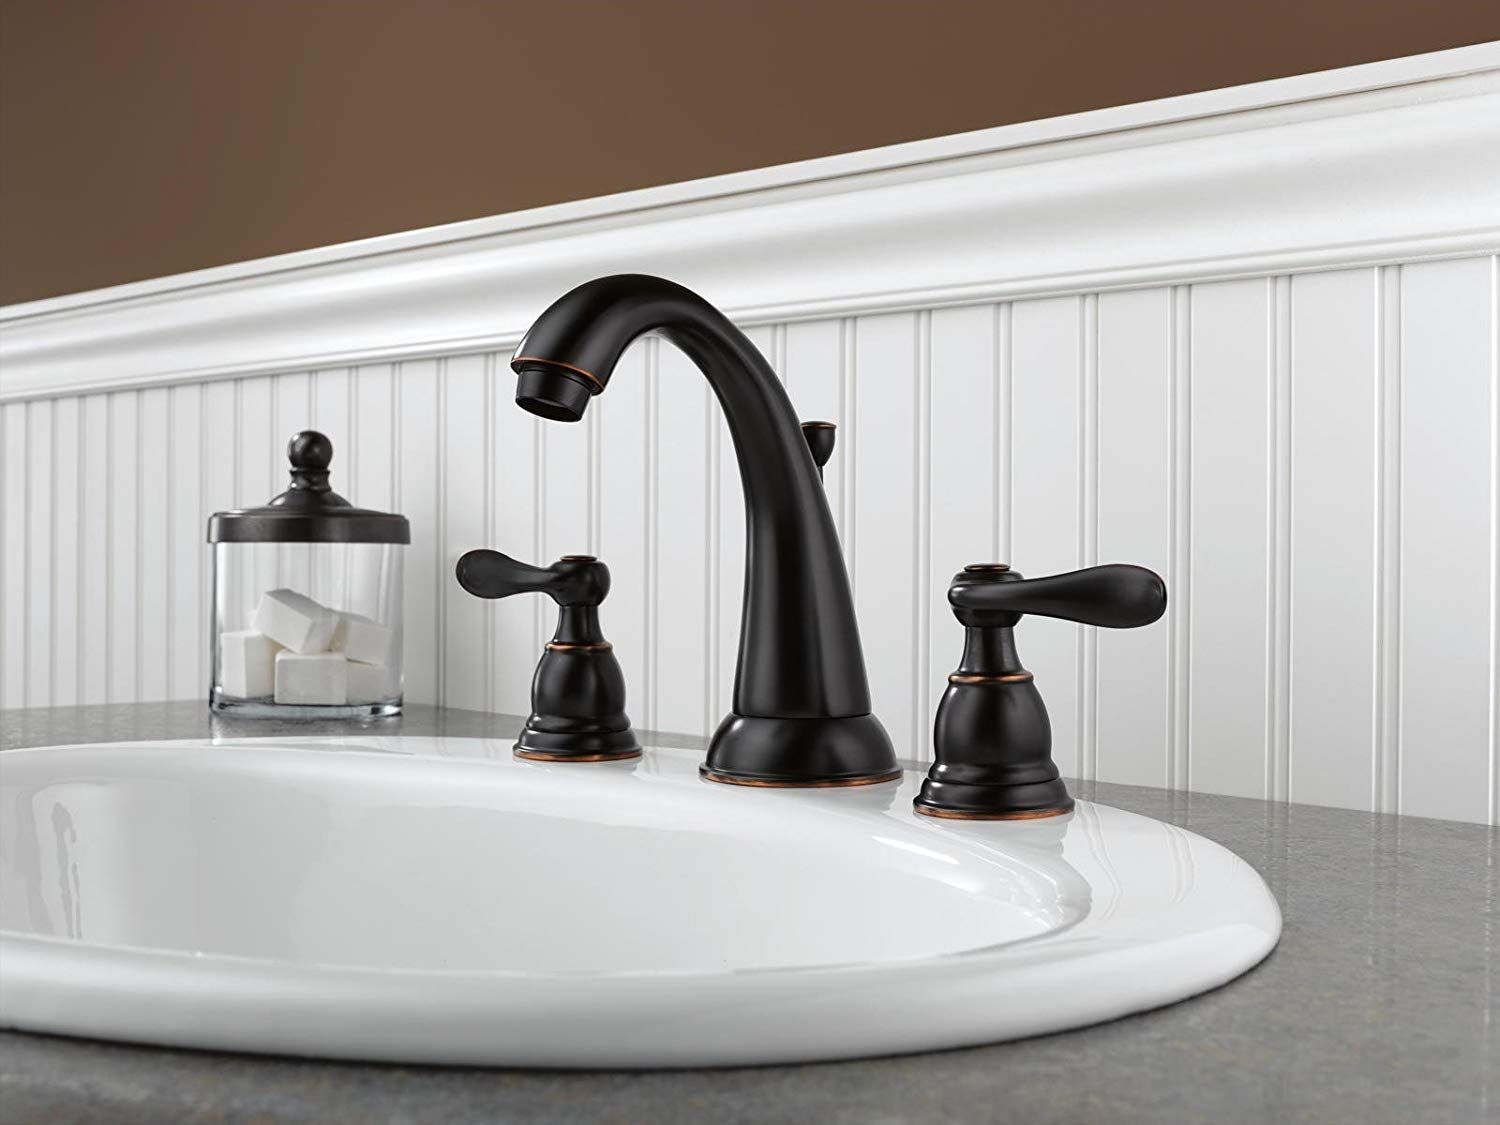 Best Bathroom Faucet Reviews In 2020 Bathroom Faucets